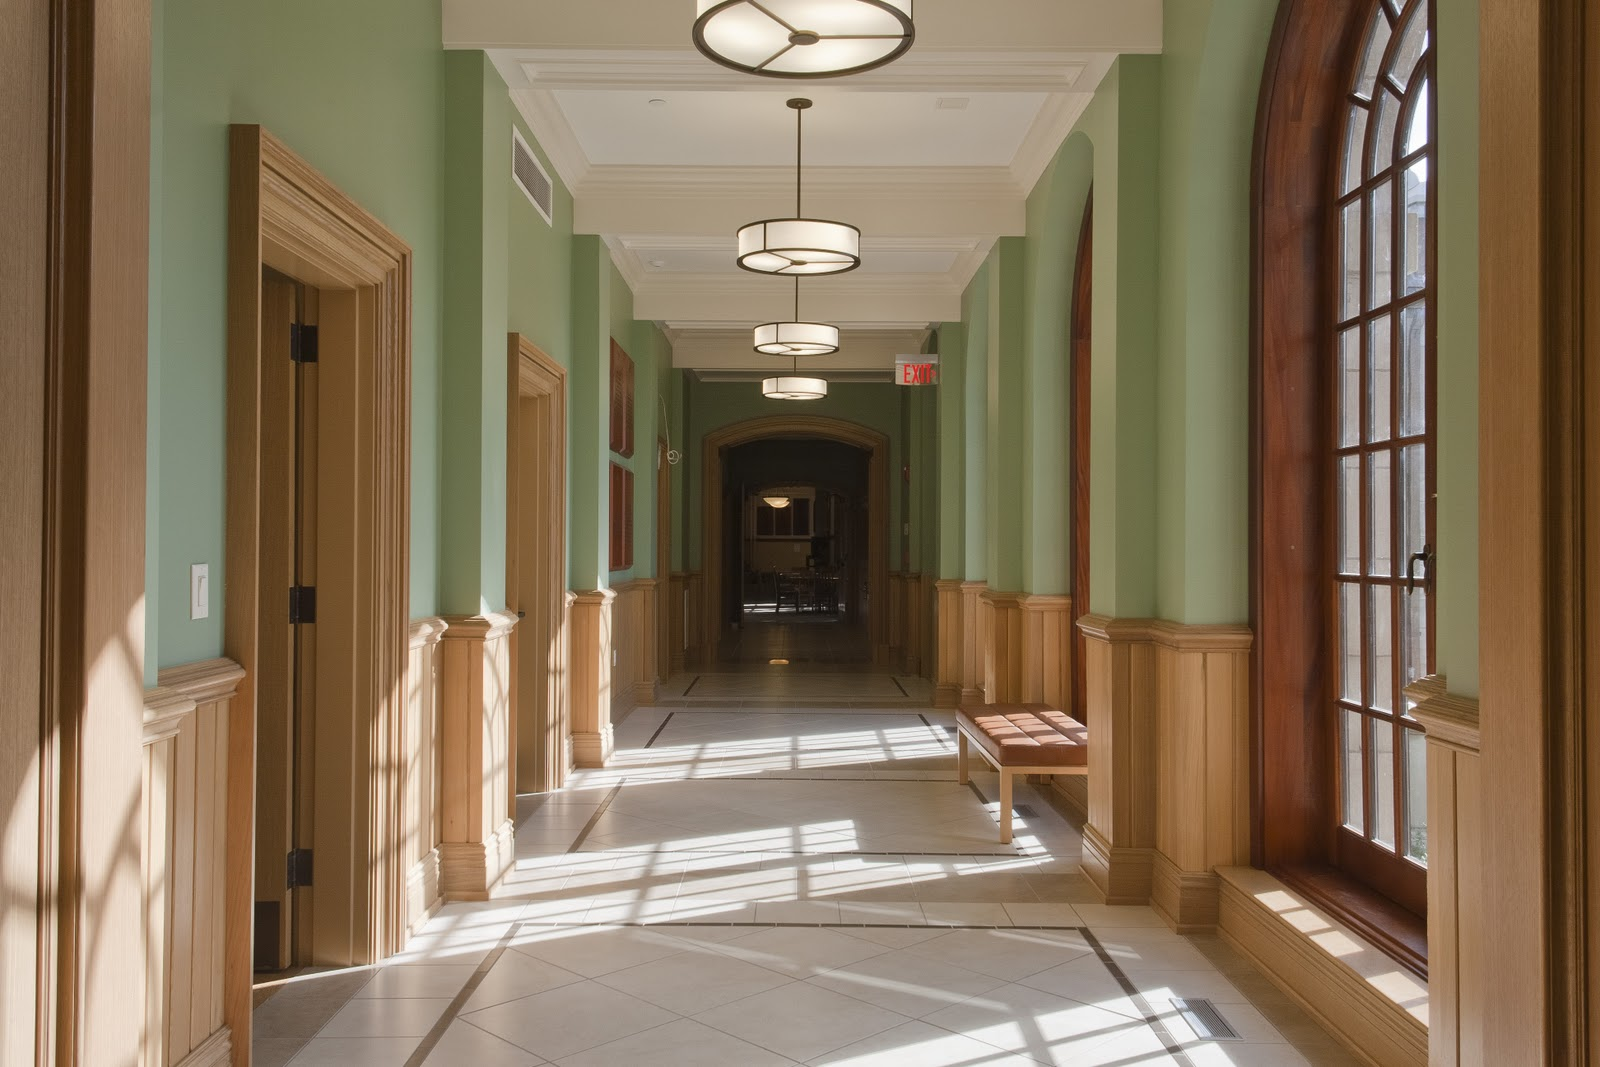 Thornwood Architectural Woodwork Inc.: The Hackley School ...